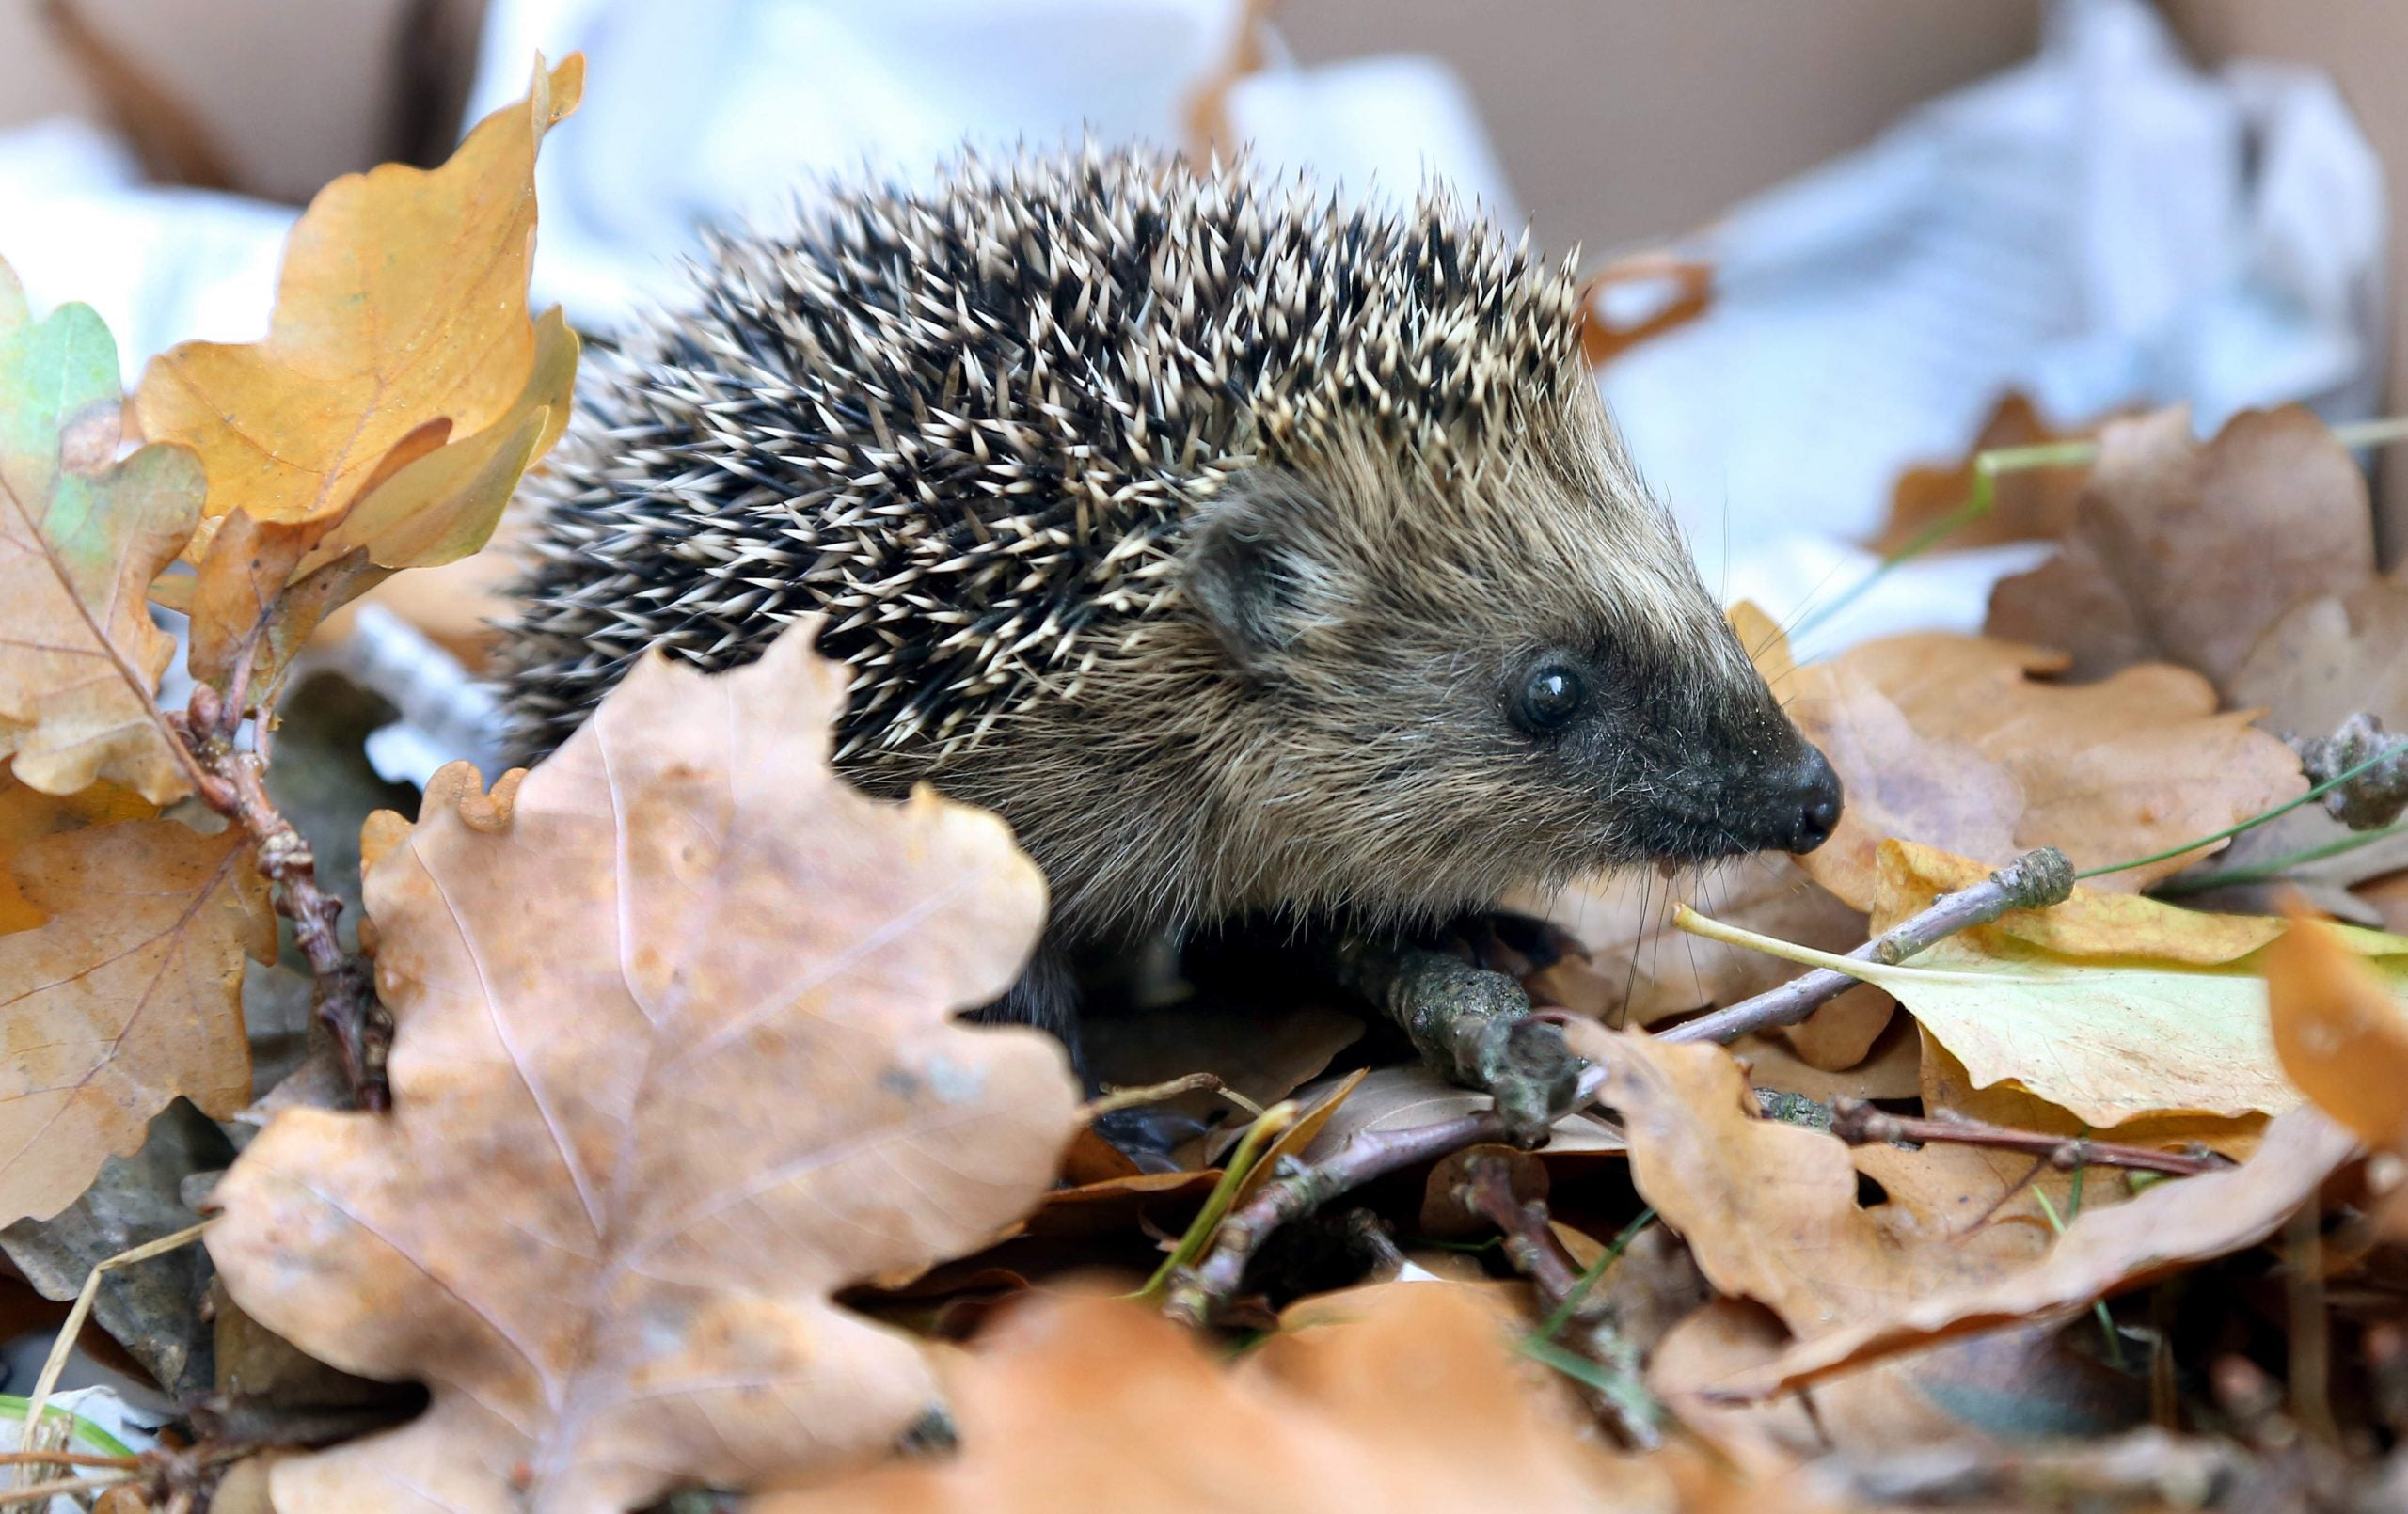 My bike ride to Kolkata, Corbyn's position on HS2, and the plight of the metropolitan hedgehog